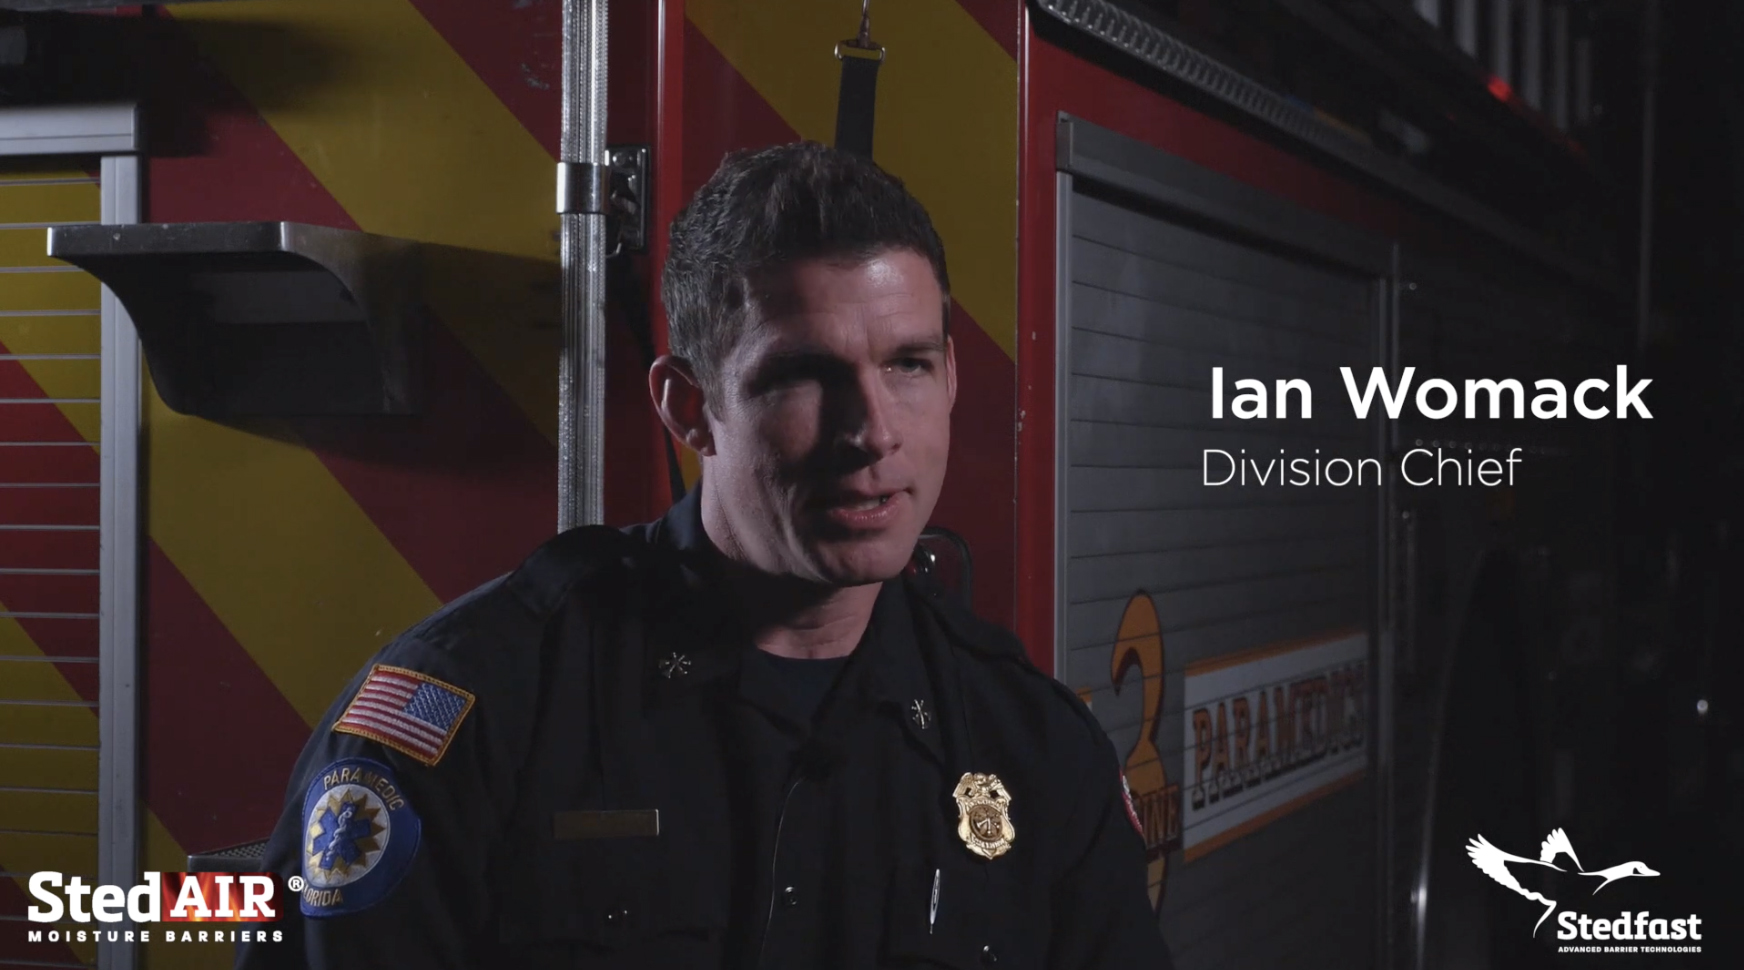 Division Chief Ian Womack shares his thoughts on technology advancements in the fire service.